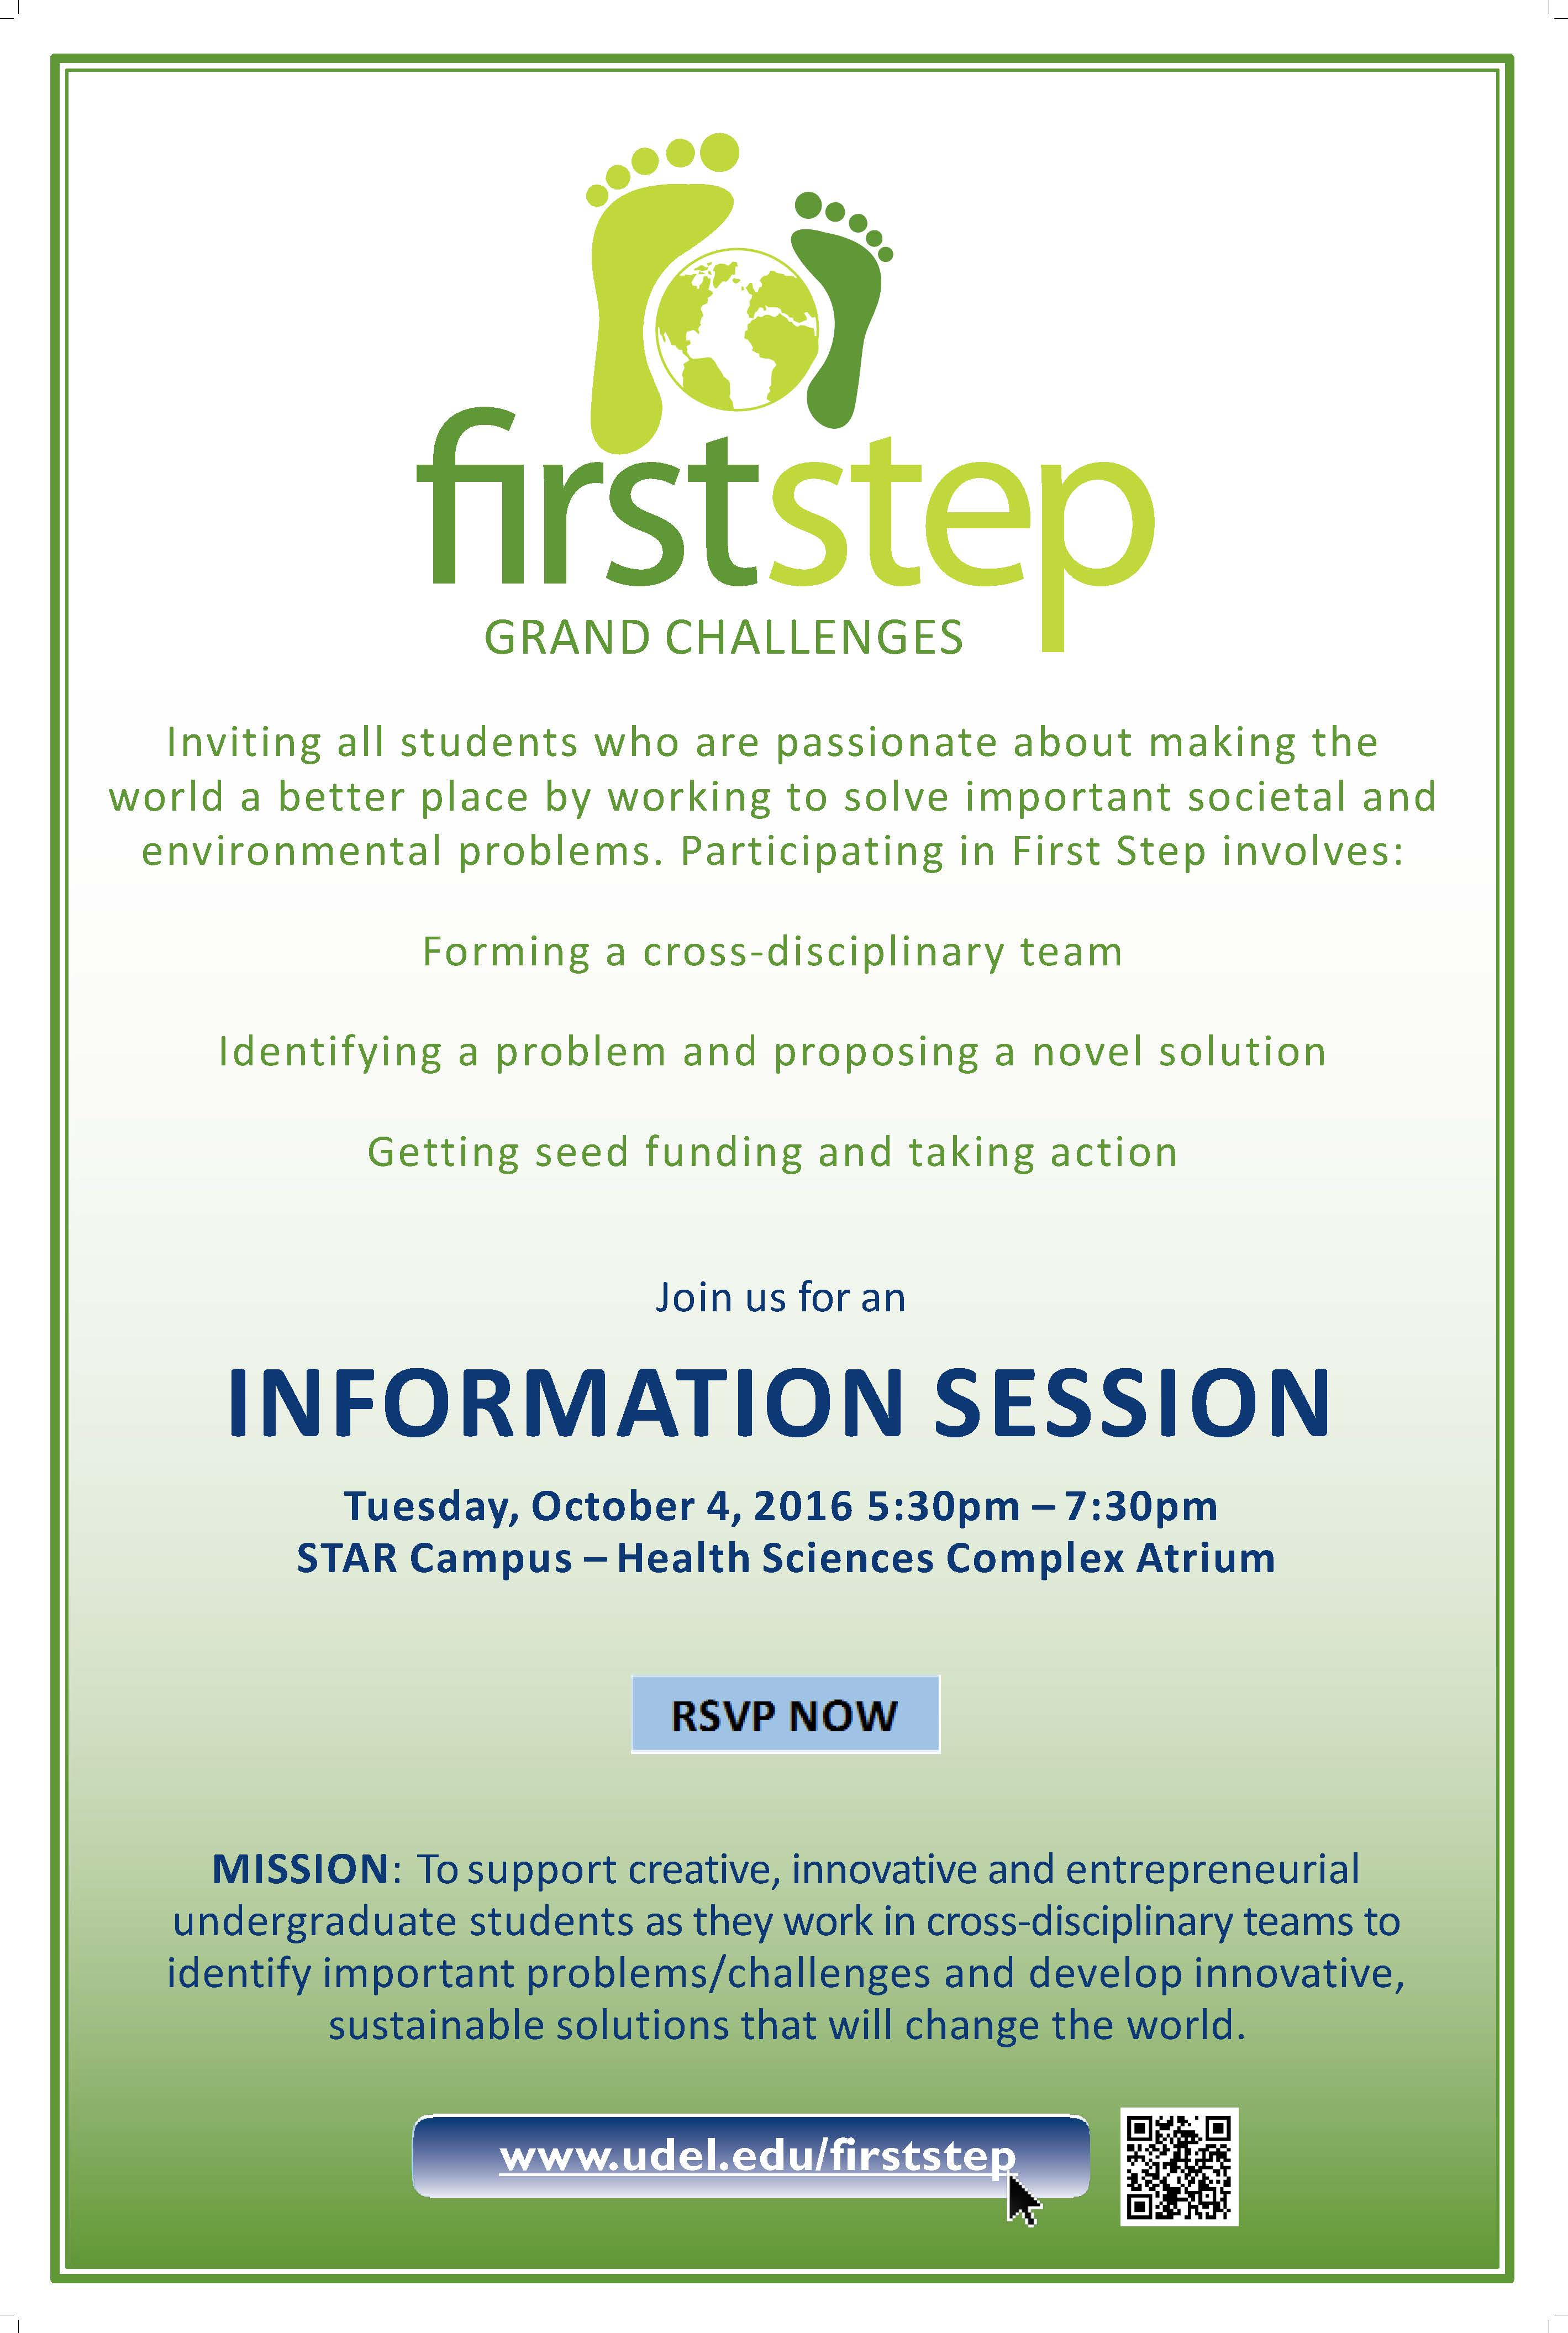 first-step-information-session-flyer-2016